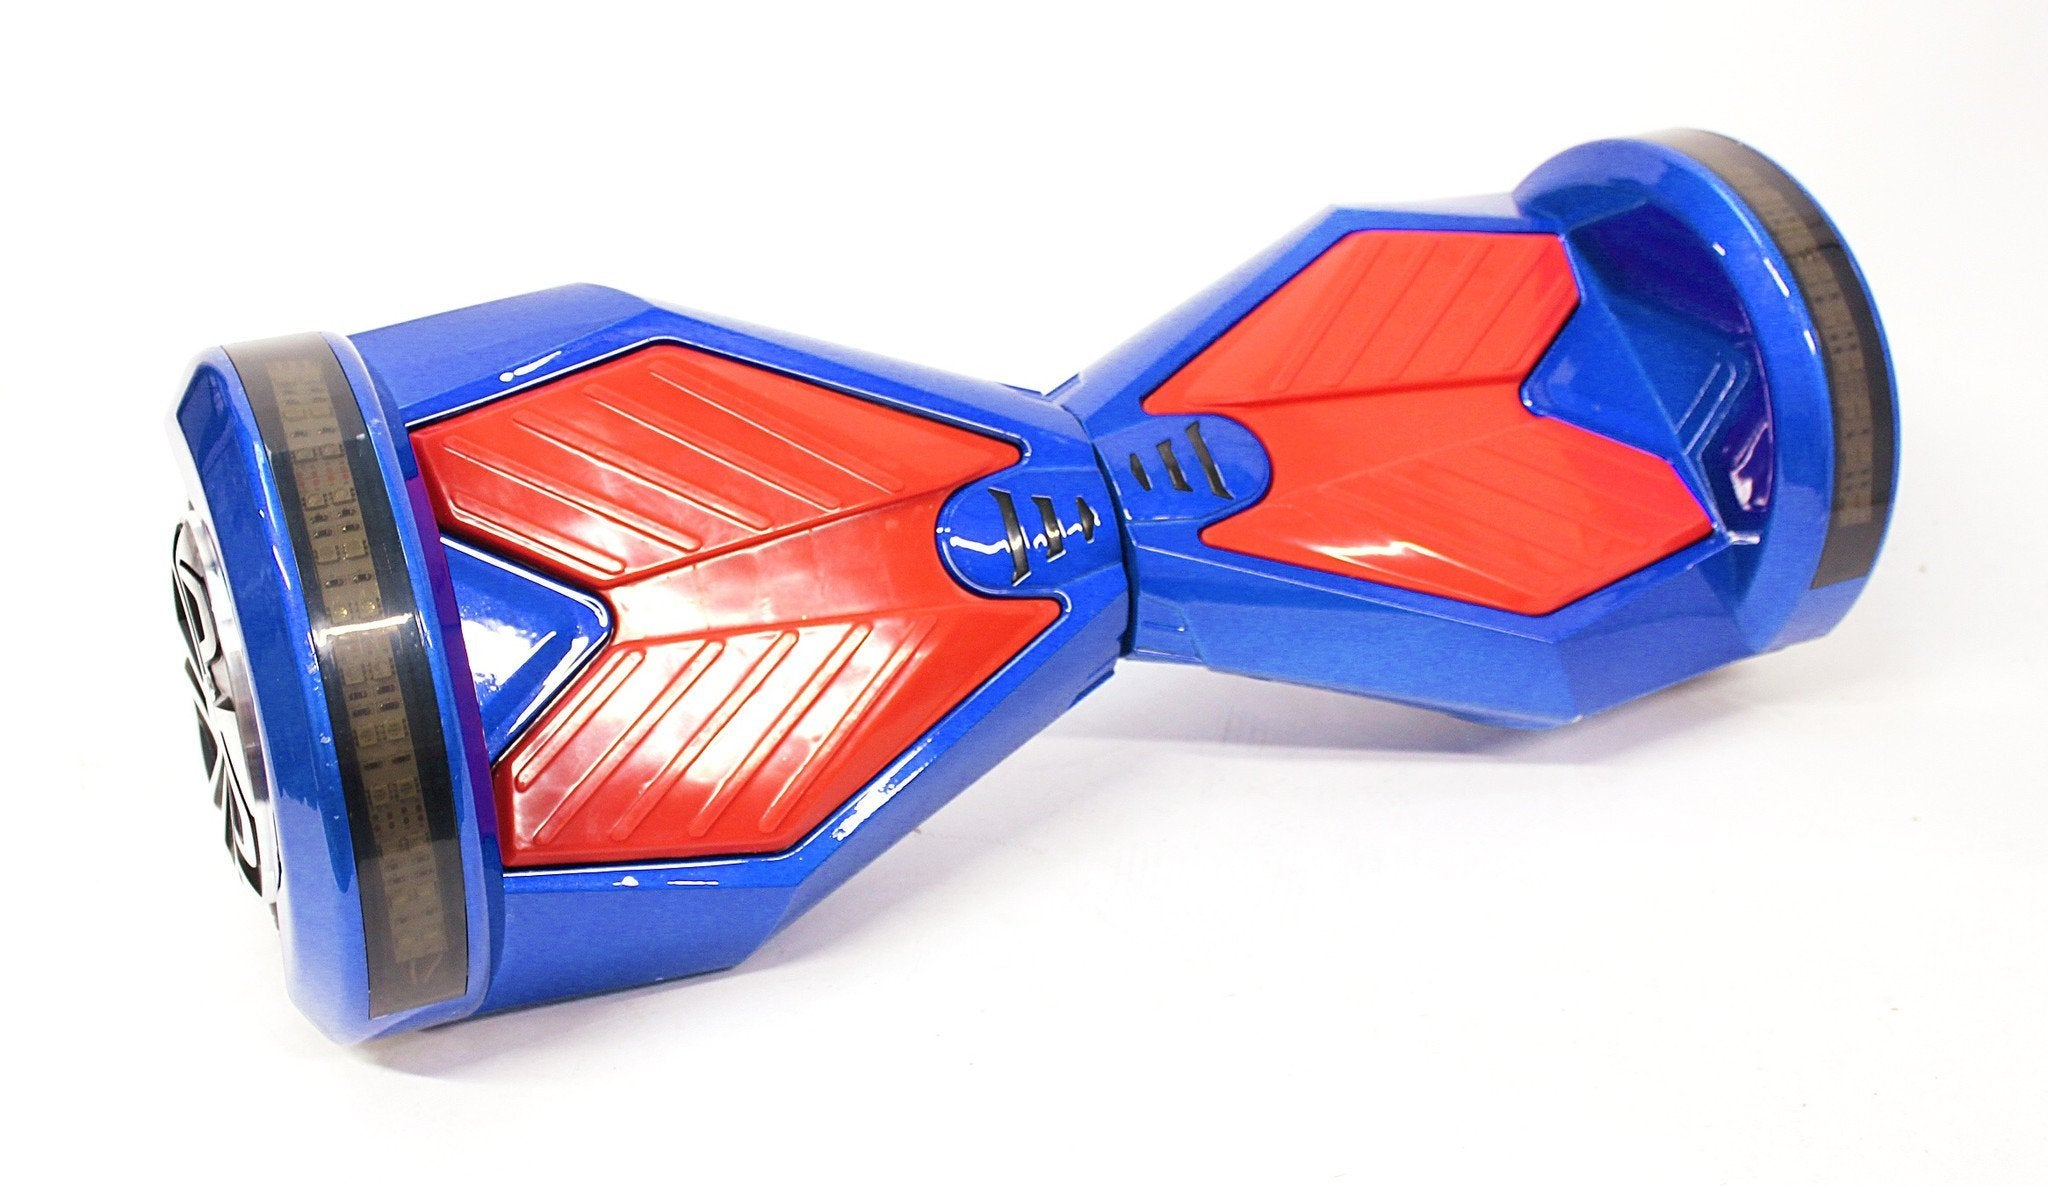 The Swegway Blue 8 Inch Hoverboard Segway Balance Board With